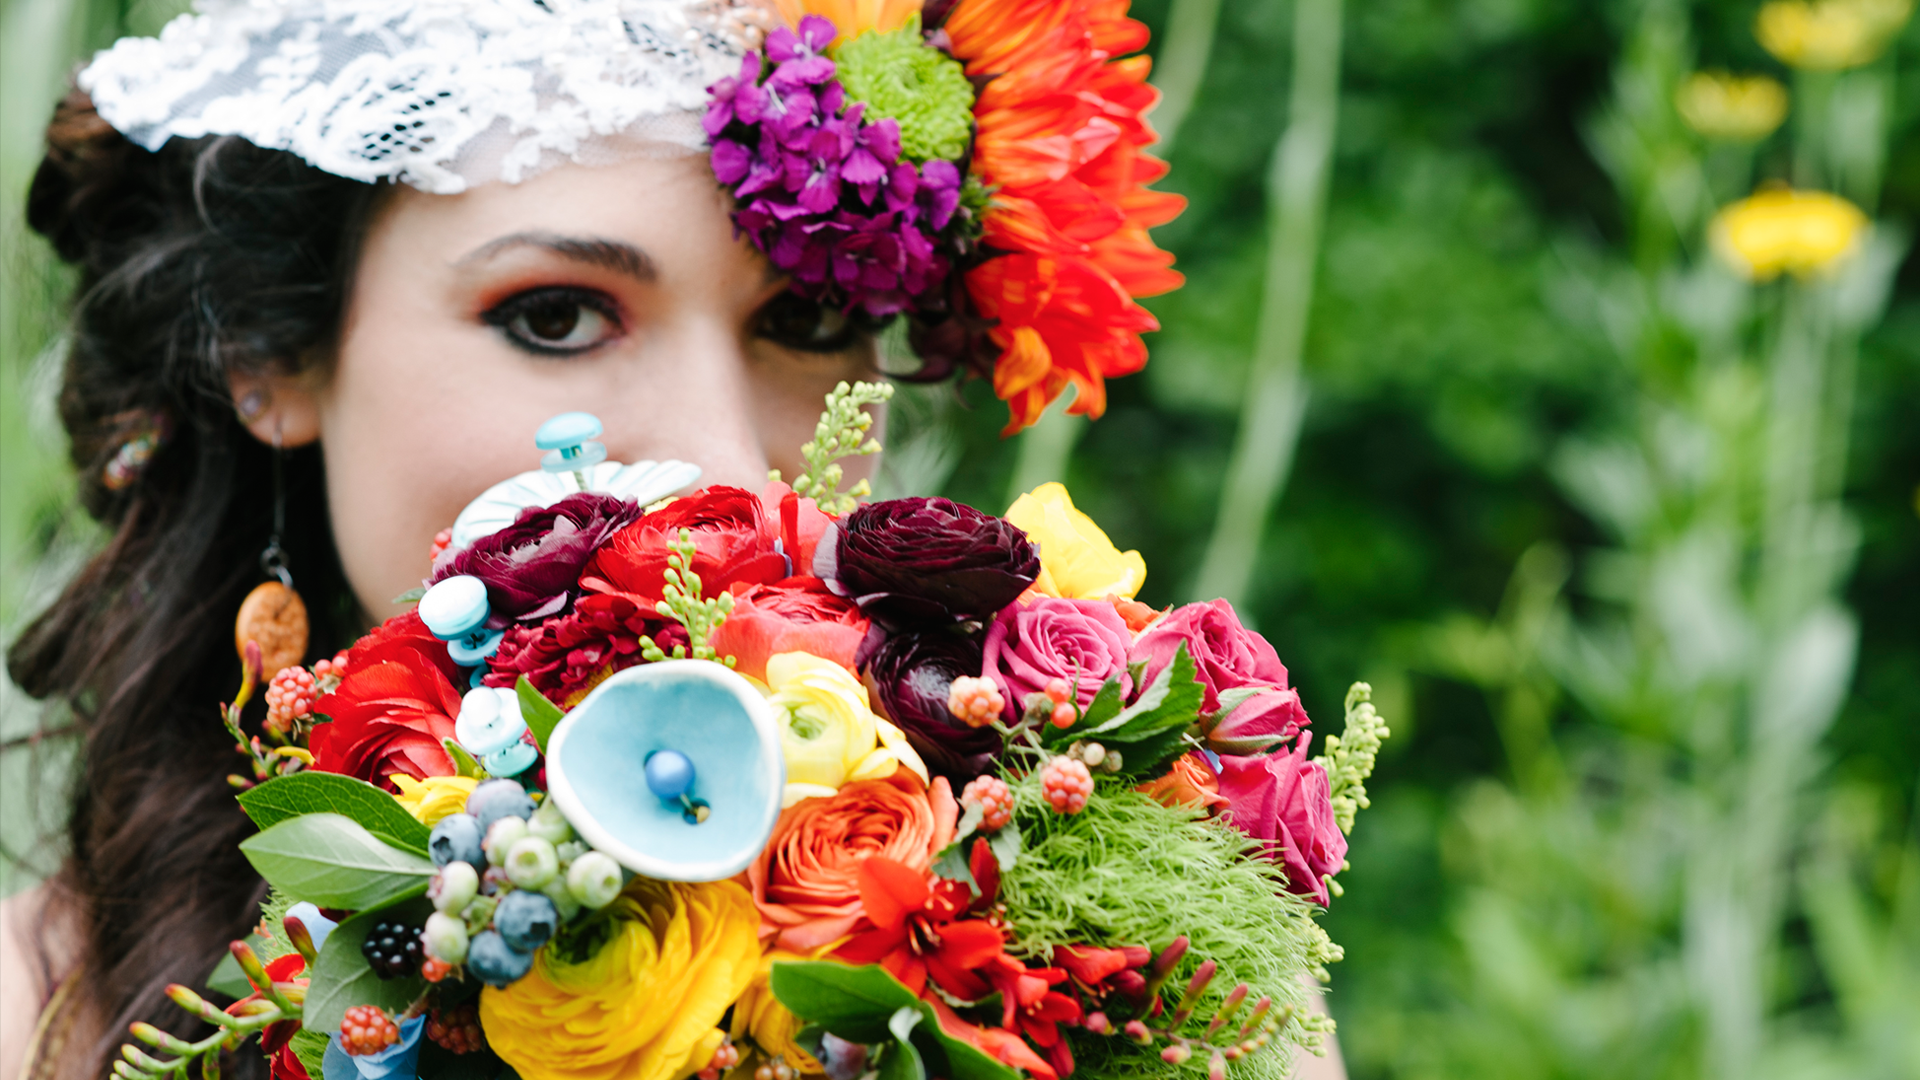 The Button Florist | Button Flowers and Accessories